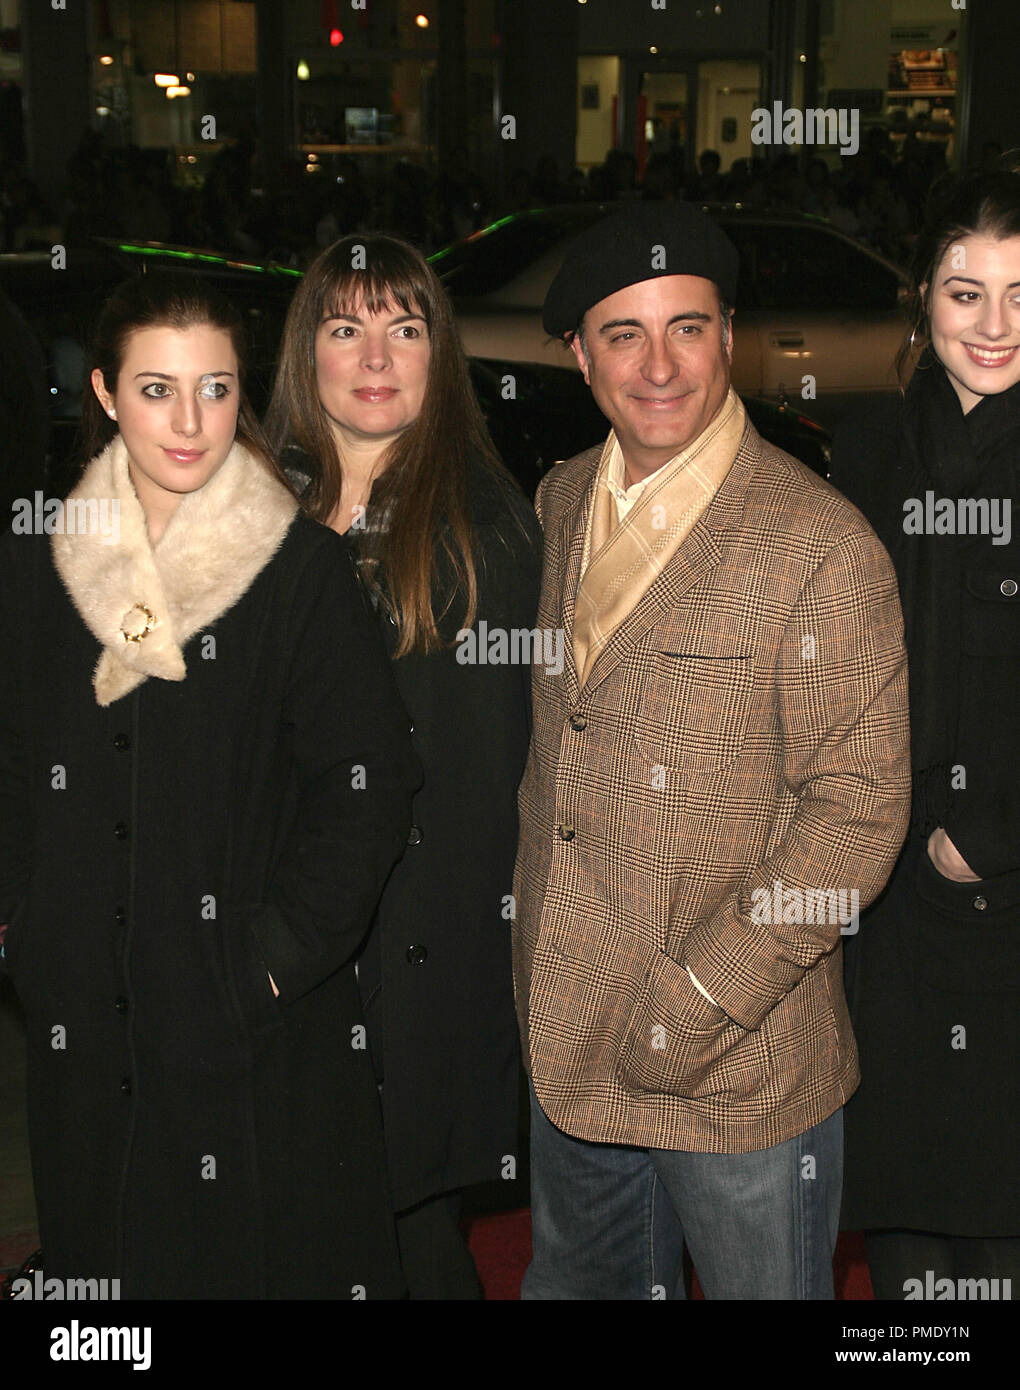 'Smokin' Aces' (Premiere) Andy Garcia 1-18-2007 / Grauman's Chinese Theater / Hollywood, CA / Universal Pictures / Photo by Joseph Martinez - All Rights Reserved  File Reference # 22905_0047PLX  For Editorial Use Only - - Stock Image